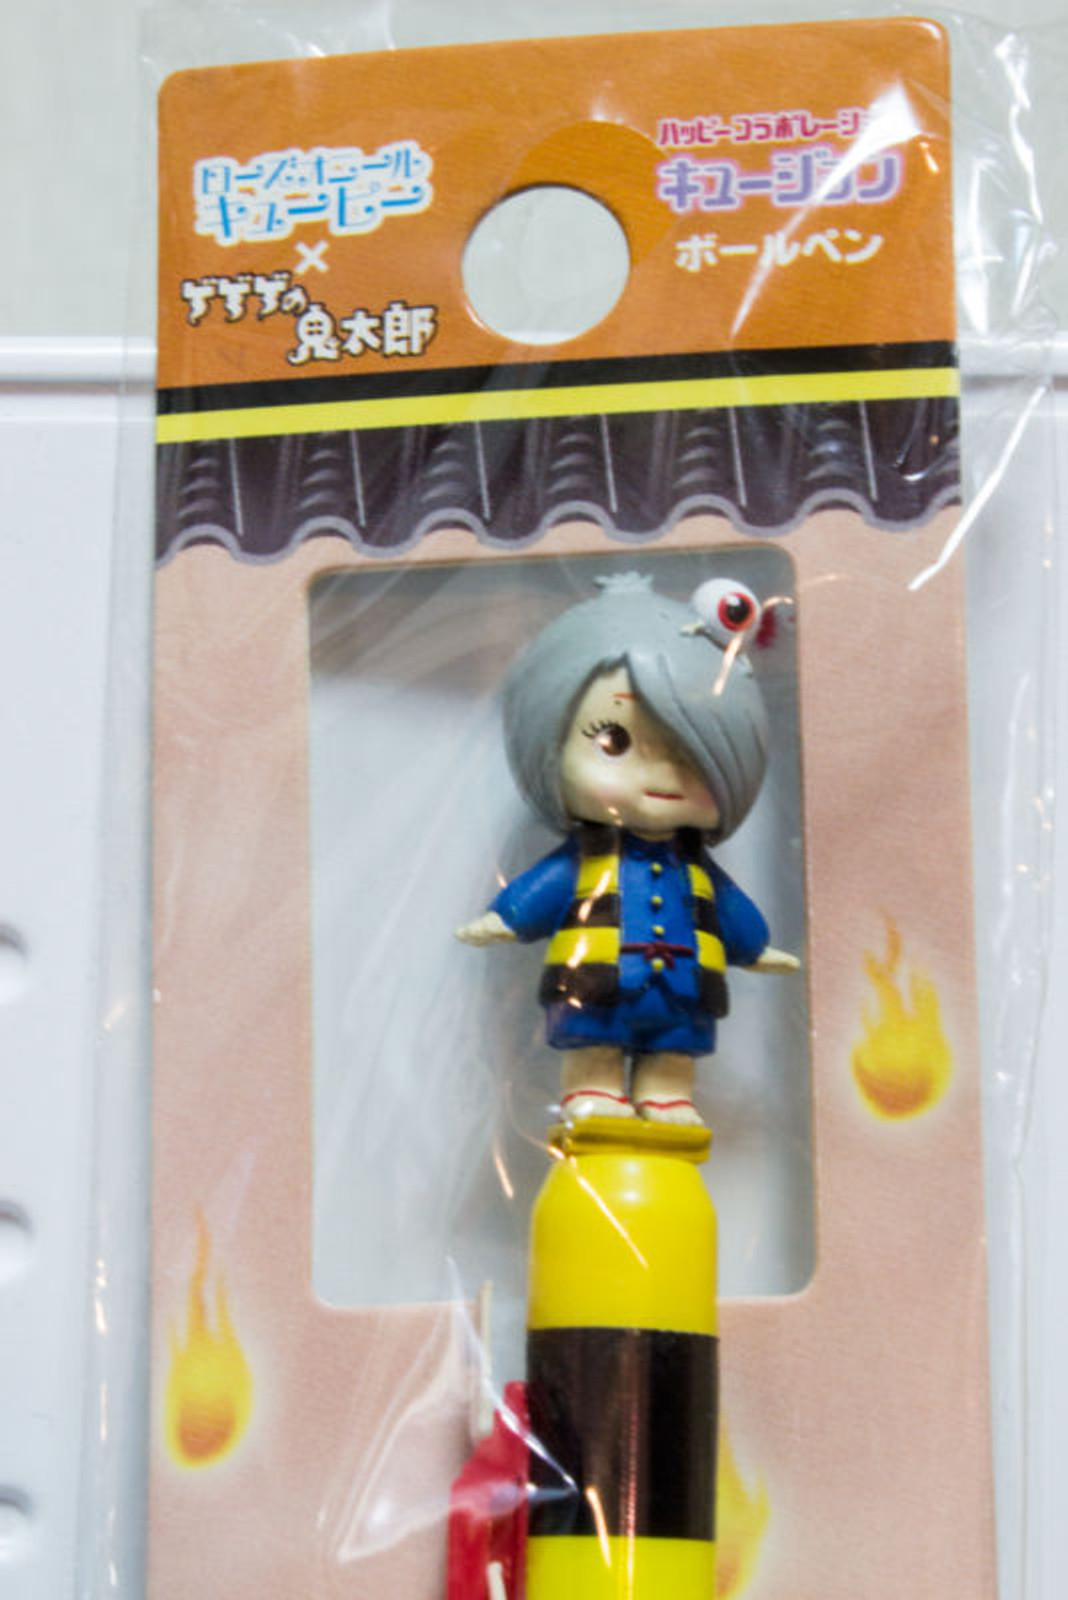 Gegege no Kitaro Rose O'neill Kewpie Kewsion Ballpoint Pen JAPAN ANIME